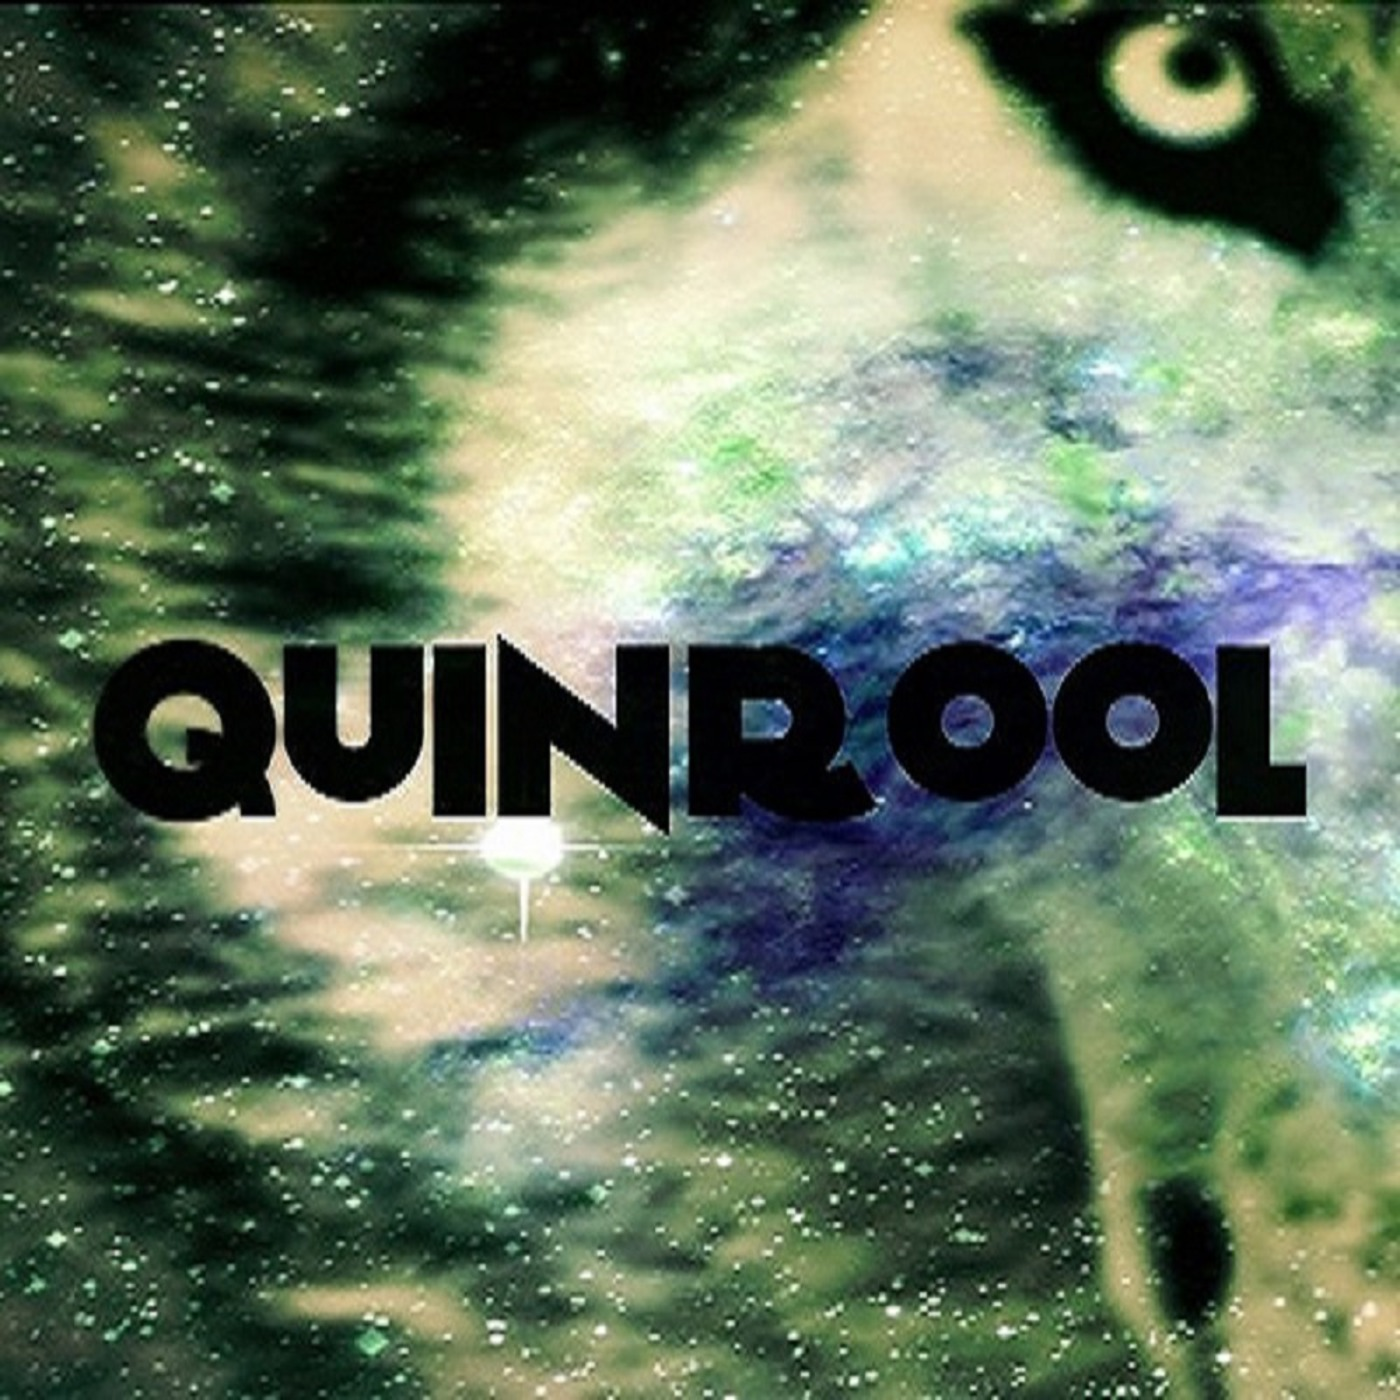 Quinrool - ElectricMax